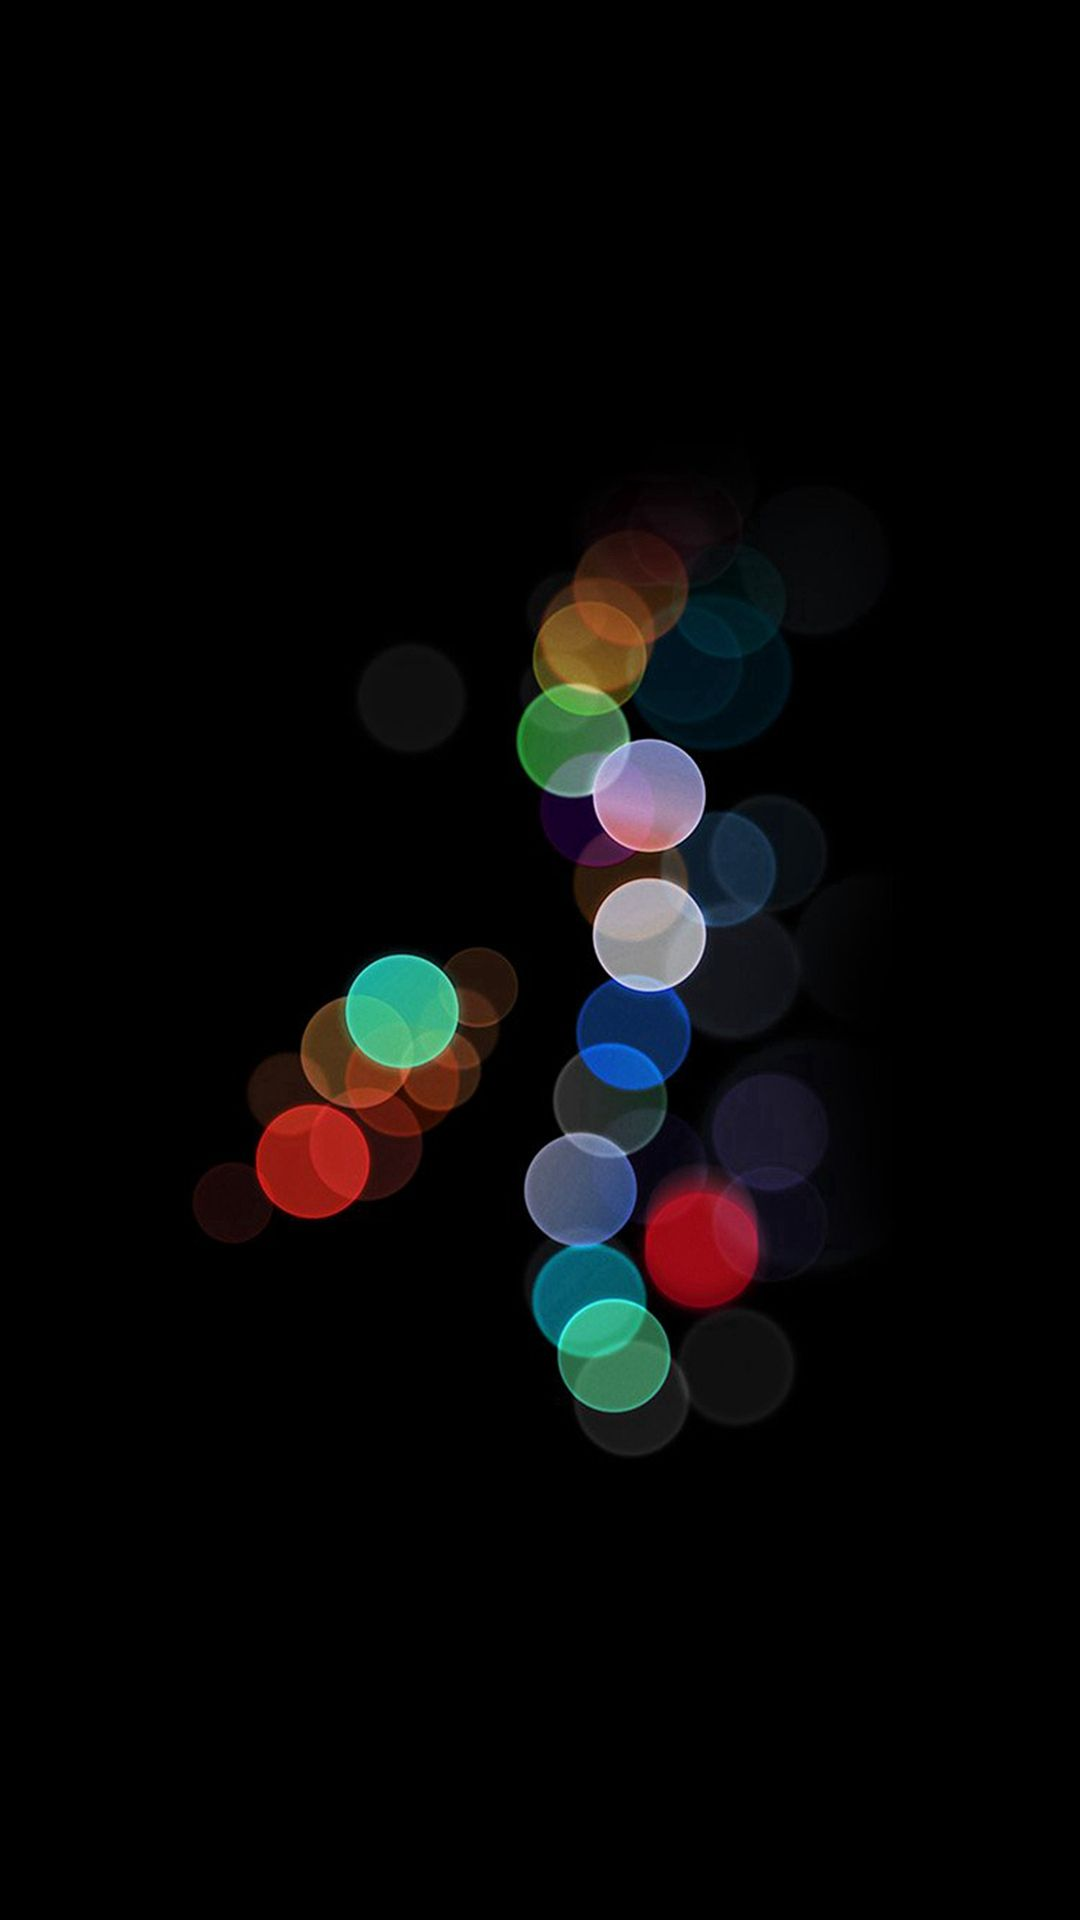 Apple Bokeh Dark Rainbow Art Illustration IPhone 8 Wallpaper